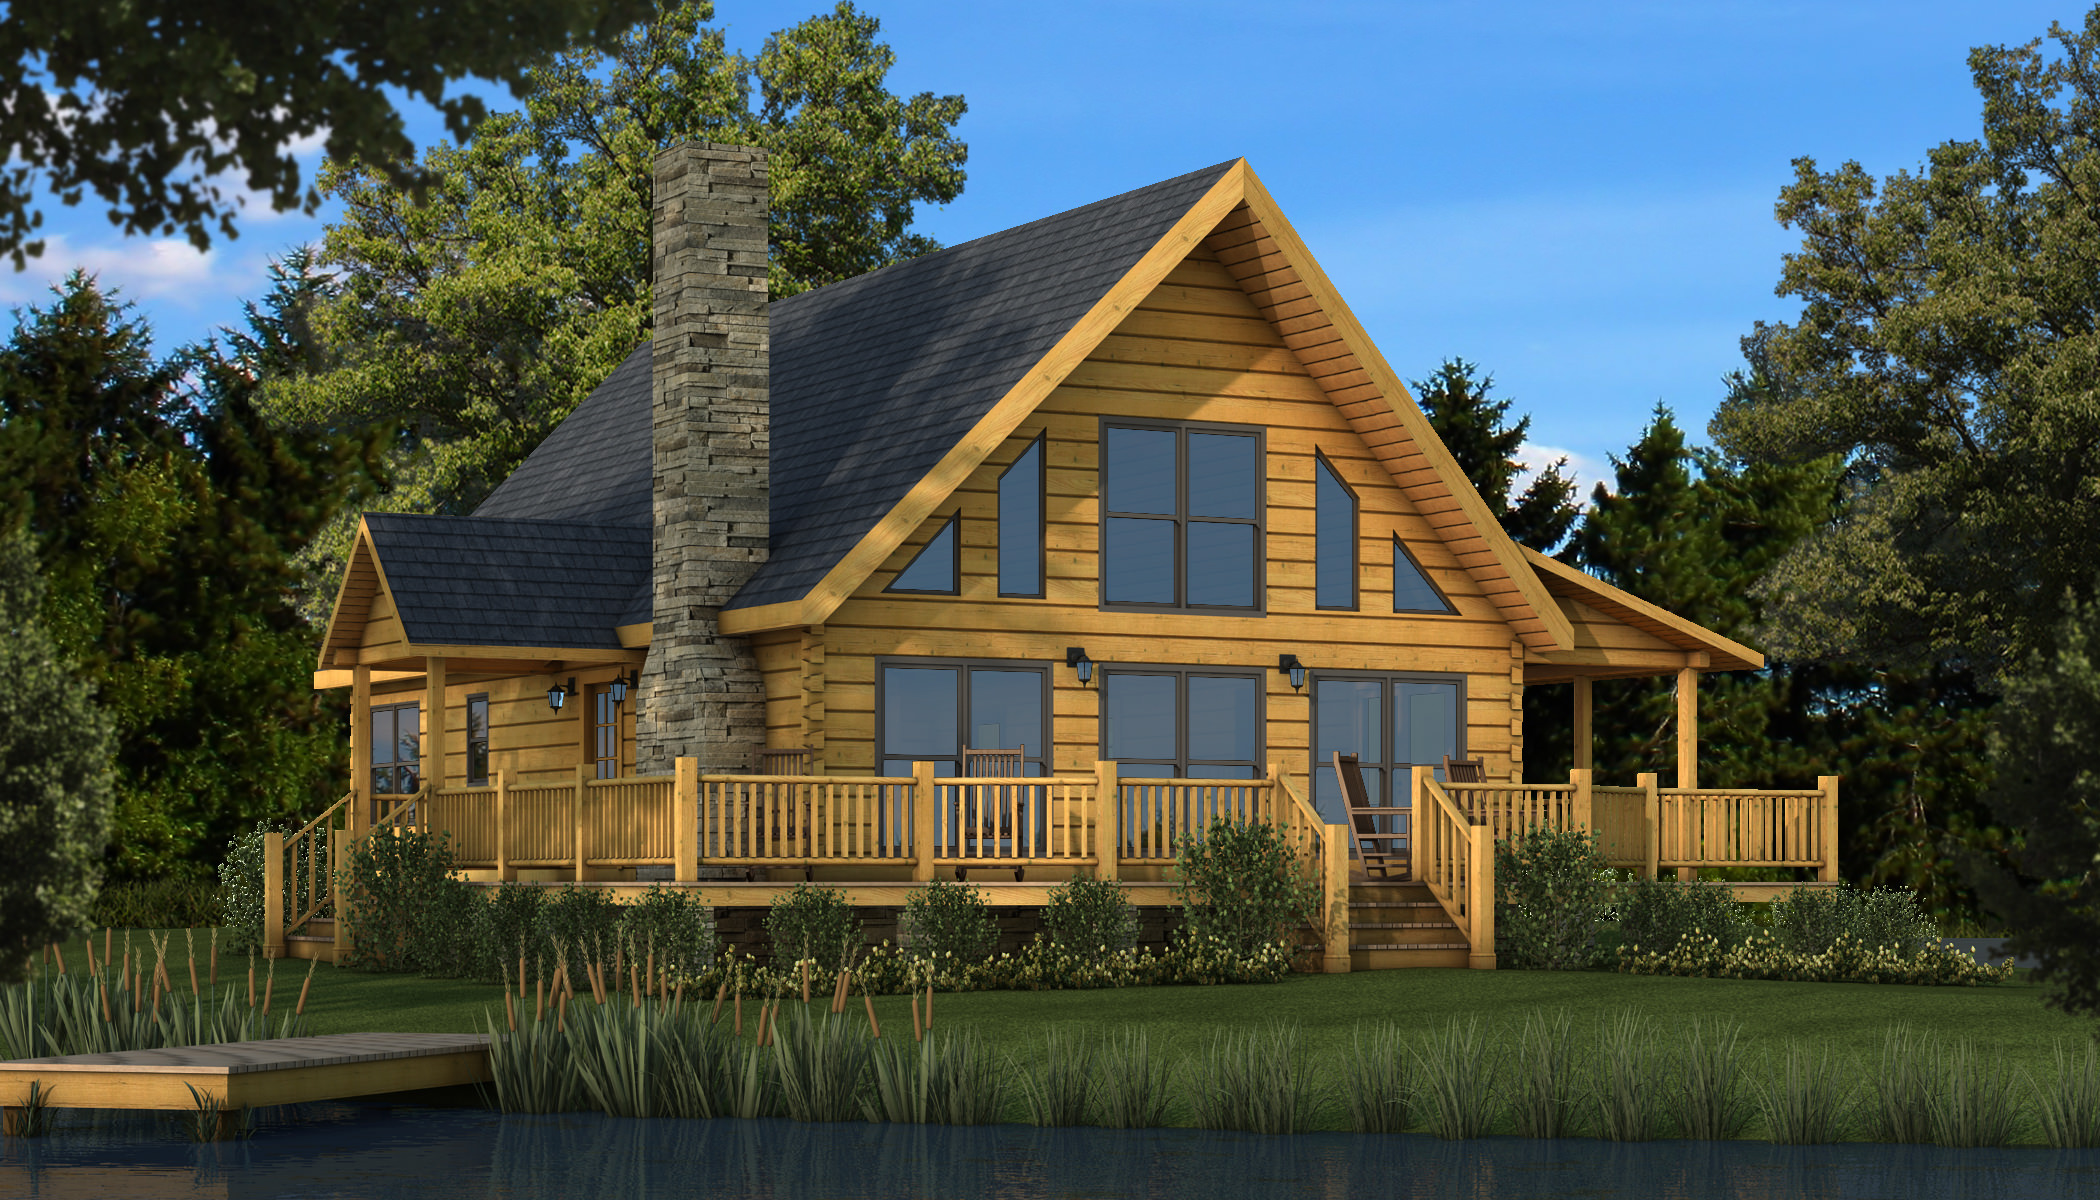 log home plans rockbridge main photo - southland log homes JNXKPTH